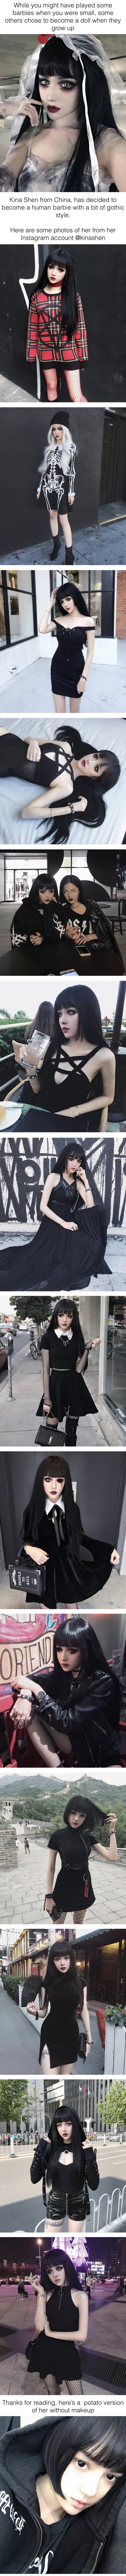 hair style, China culture, China - Meet The Human Gothic Barbie From China